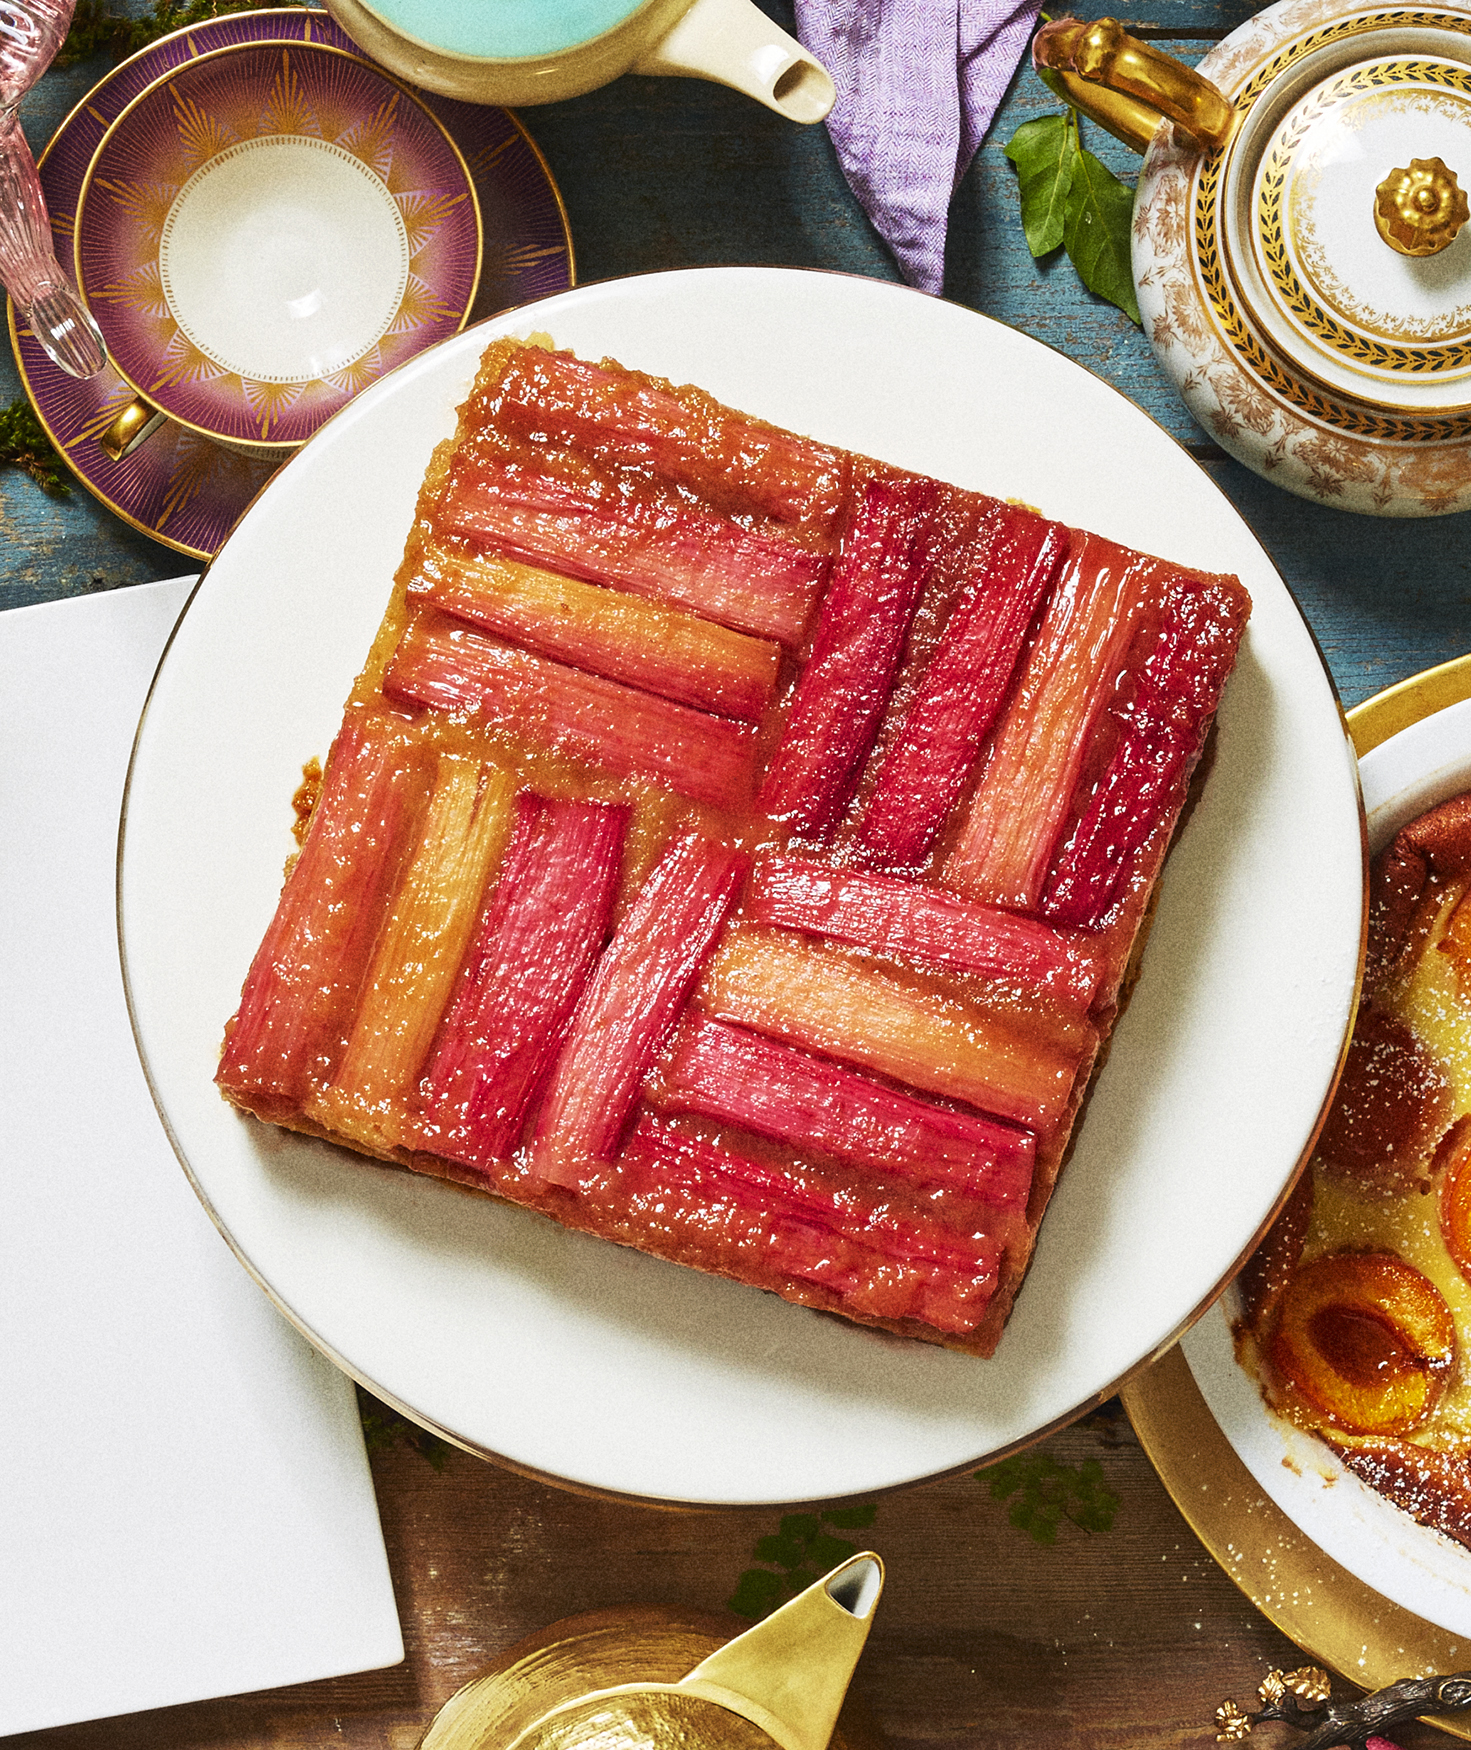 Rhubarb Upside Down Cake Recipe Real Simple